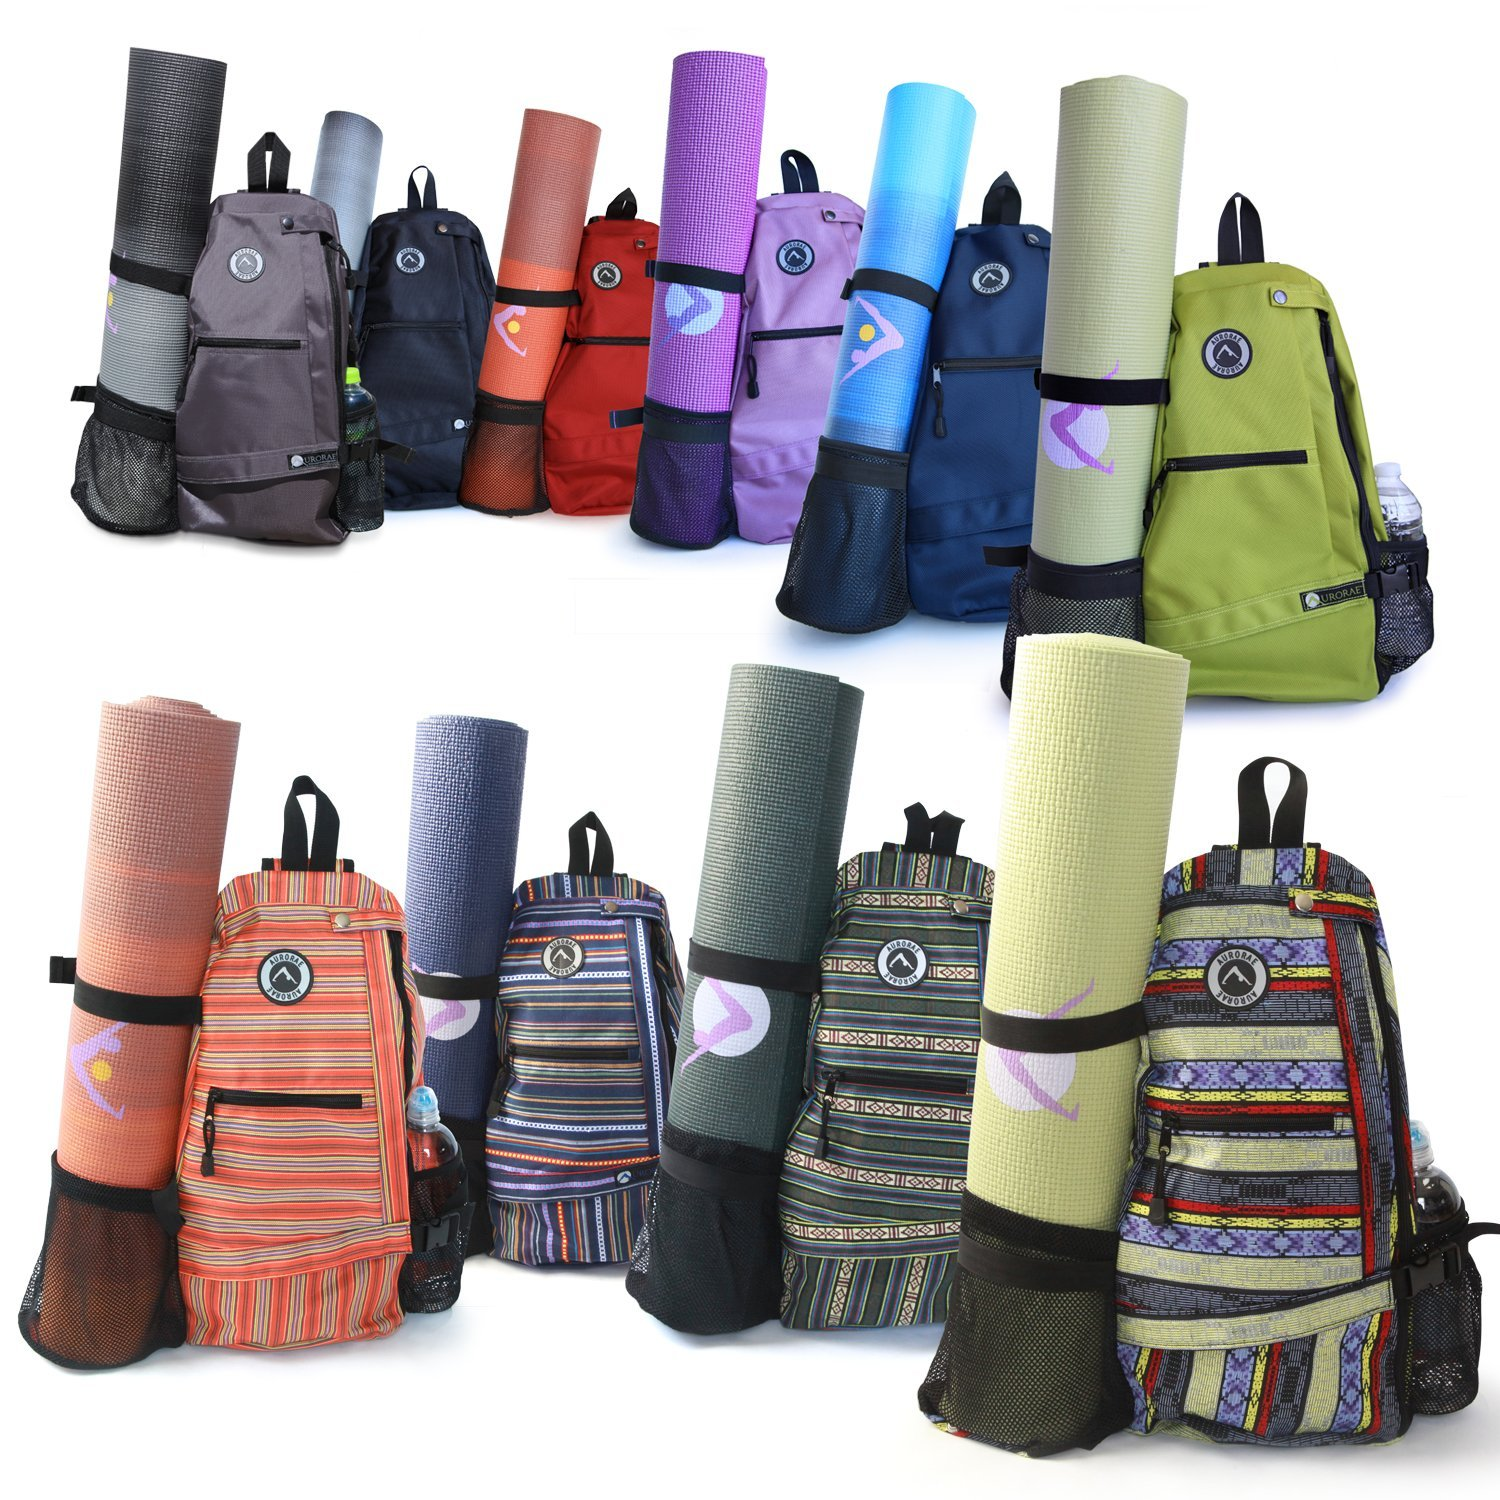 Amazon.com : Aurorae Yoga Multi Purpose Cross-body Sling Back Pack ...